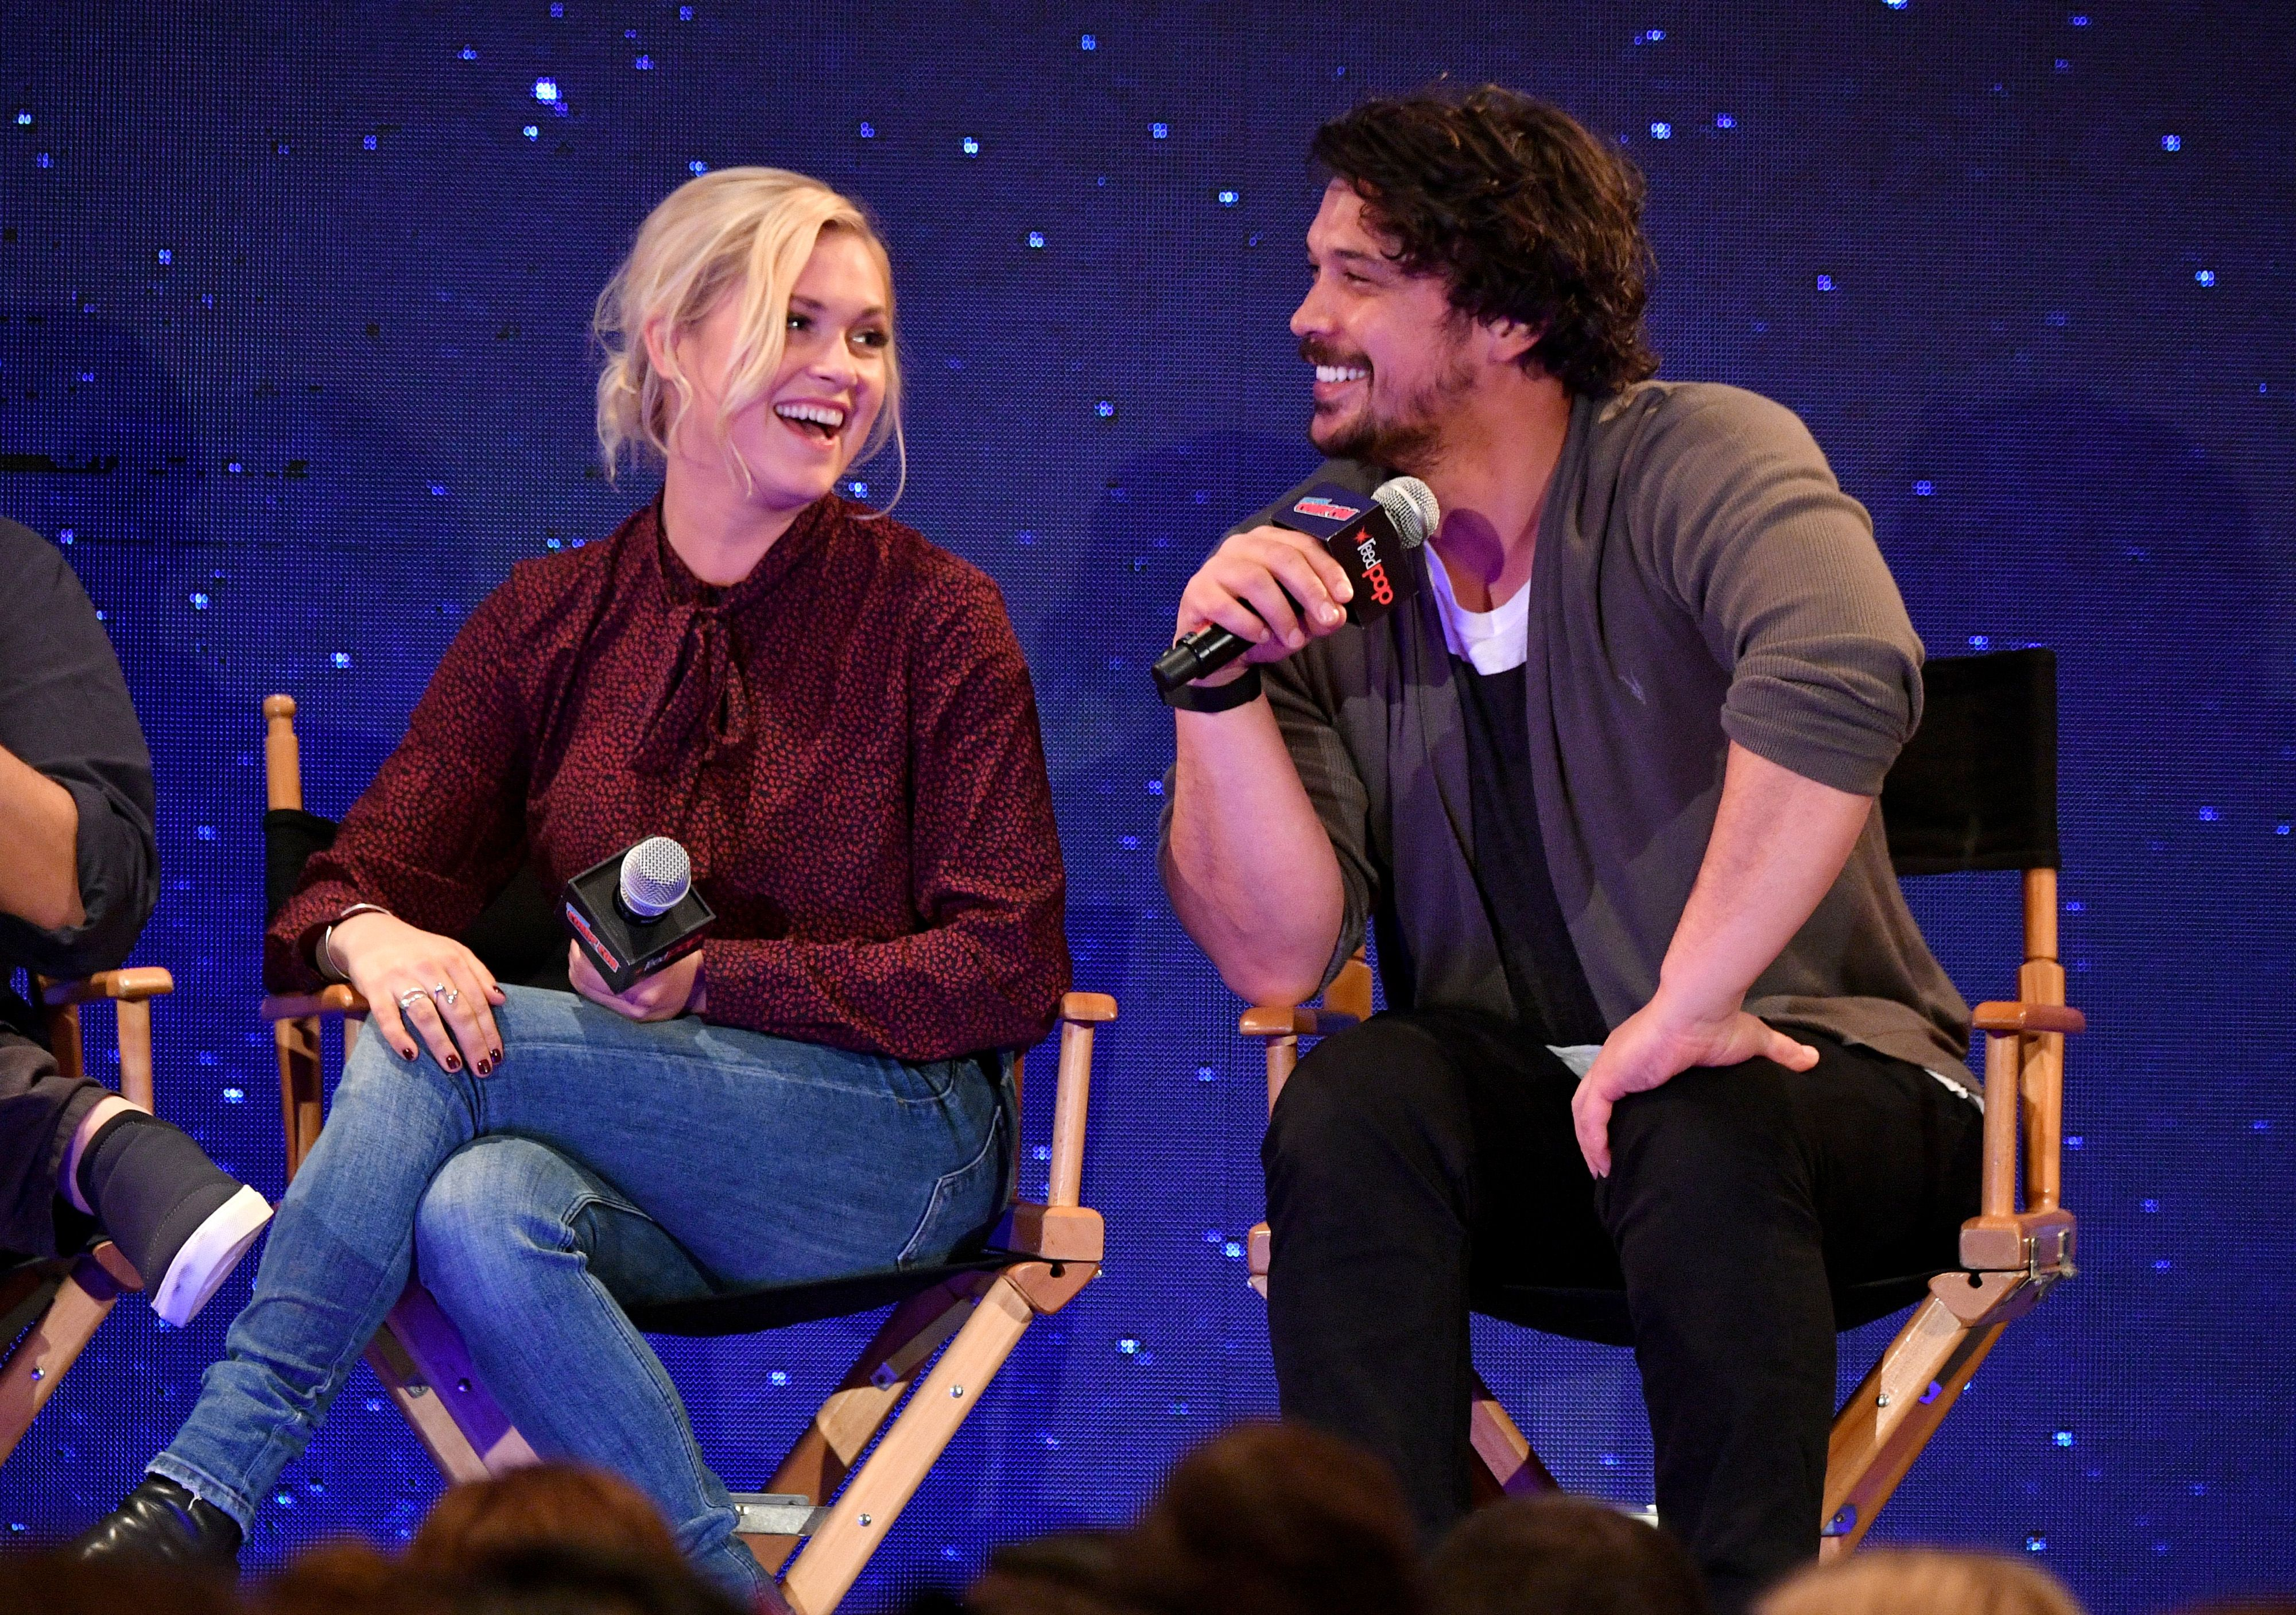 Bob Morley Reveals that He's Attempted Suicide Multiple Times